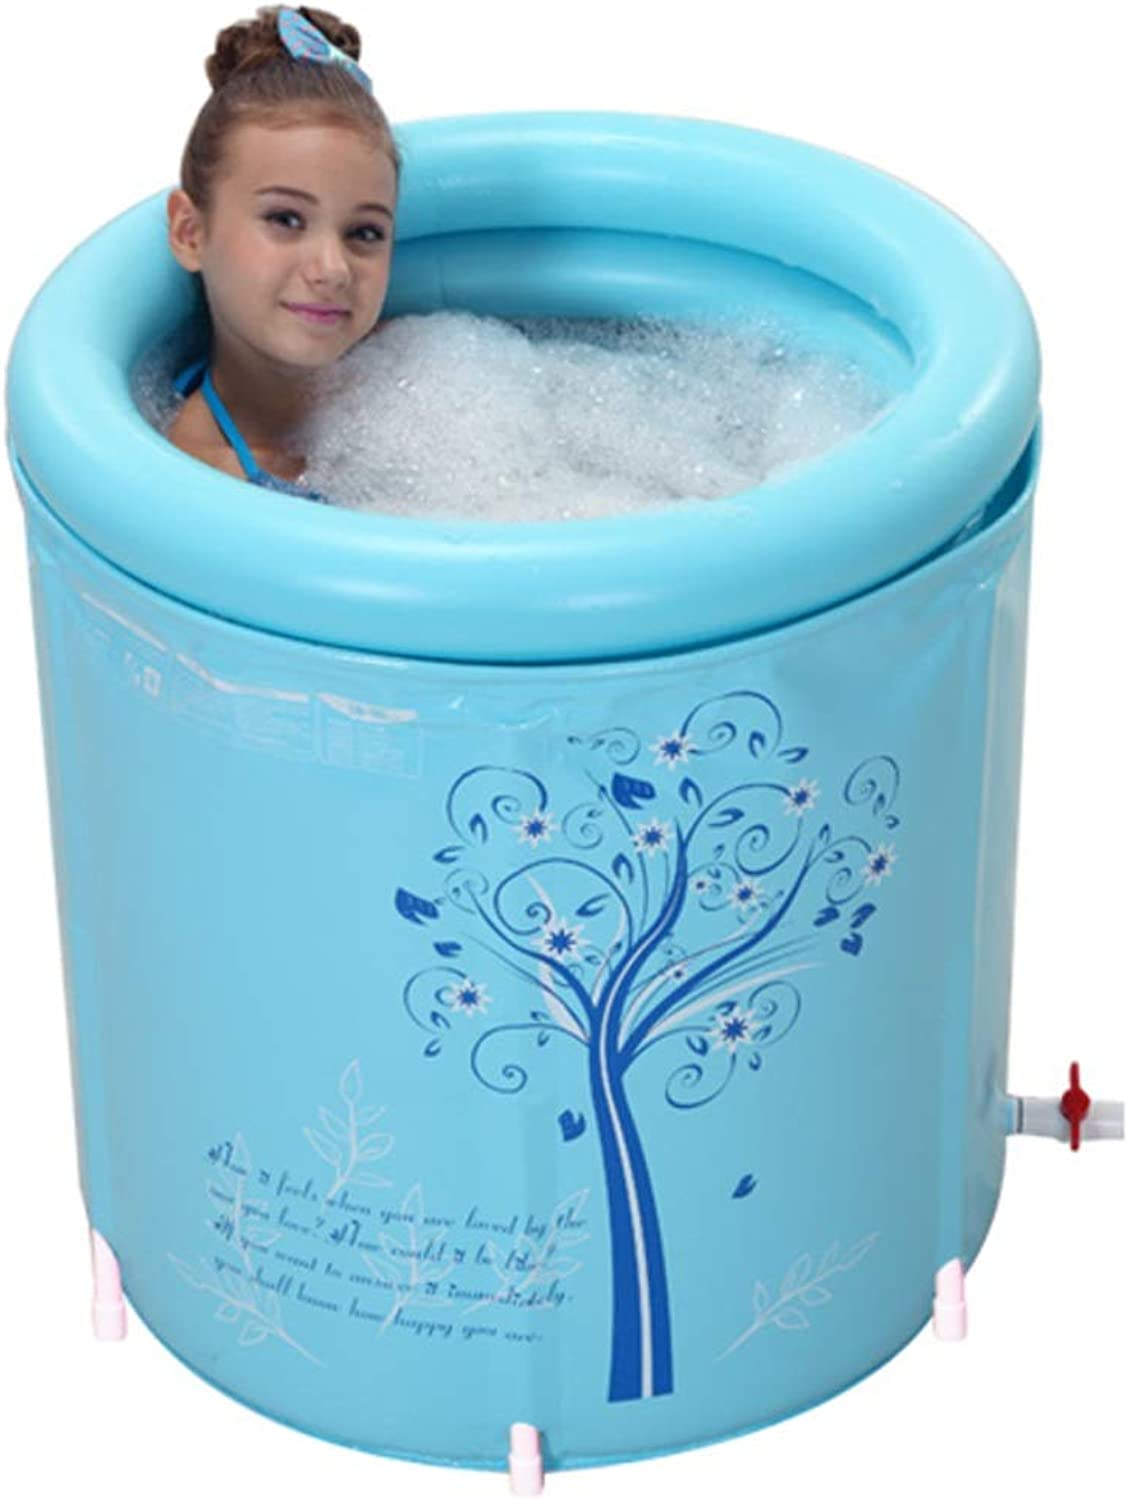 MFB Adult Bath Tub with Balloon, Foldable Bracket Structure, Full Body Tub Bath Tub 360° Continuous Lock Temperature Saves Space,Plastic Bathtub,Spa Massage Bathtub (Size   65  65cm)